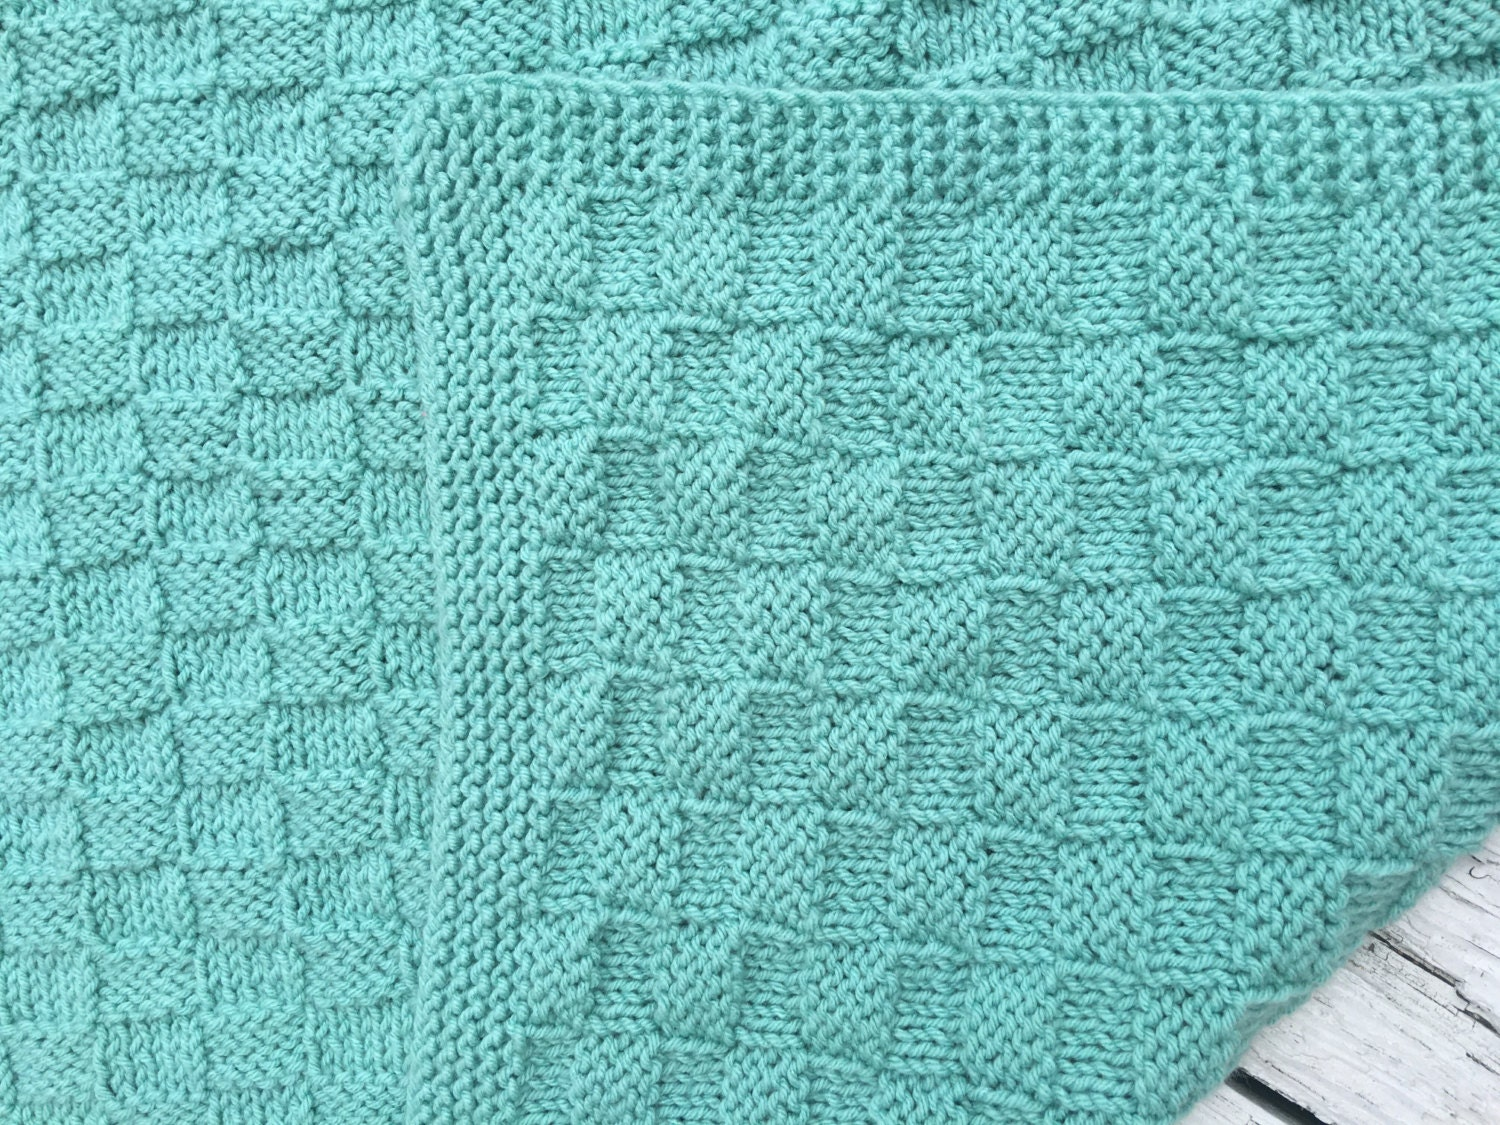 Handknit Throw Soft Sage Color Sage Childrens Blanket